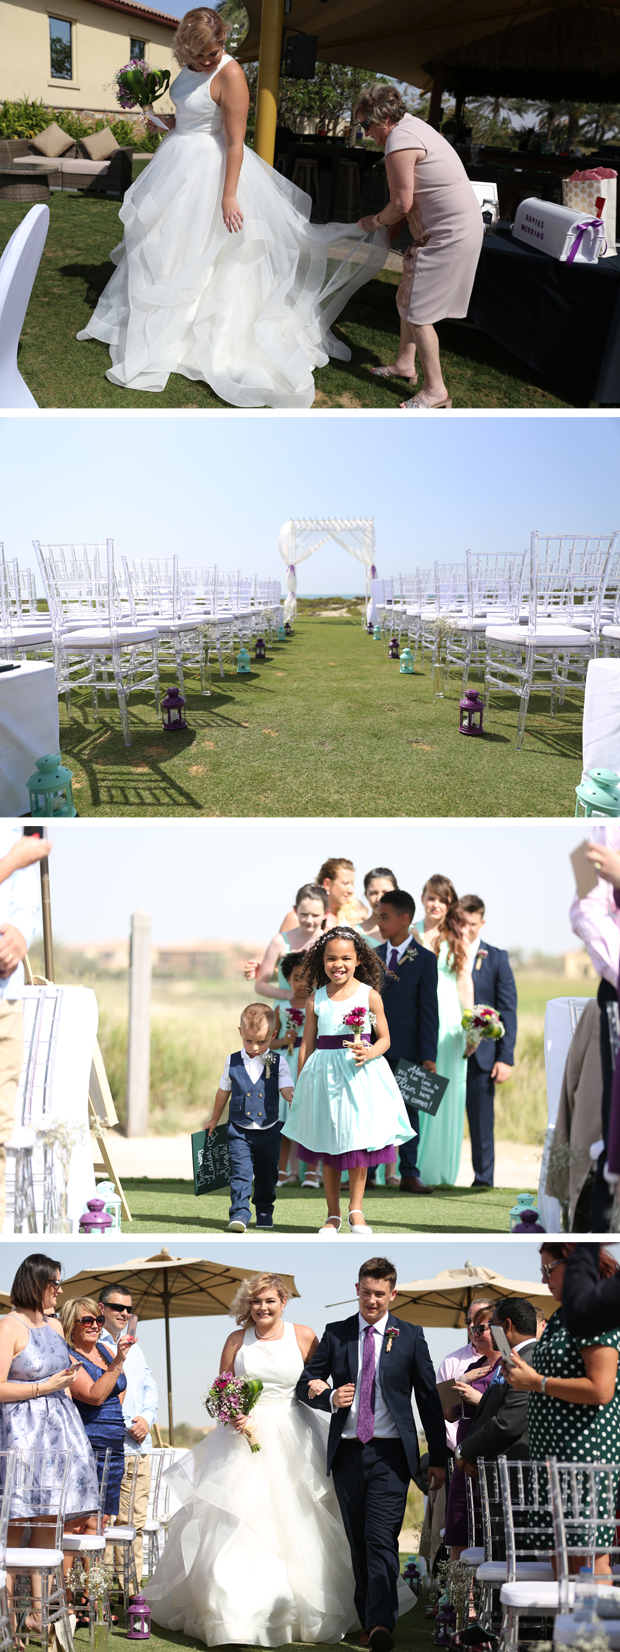 Real Wedding venue Abu Dhabi Saadiyat Beach Golf Club